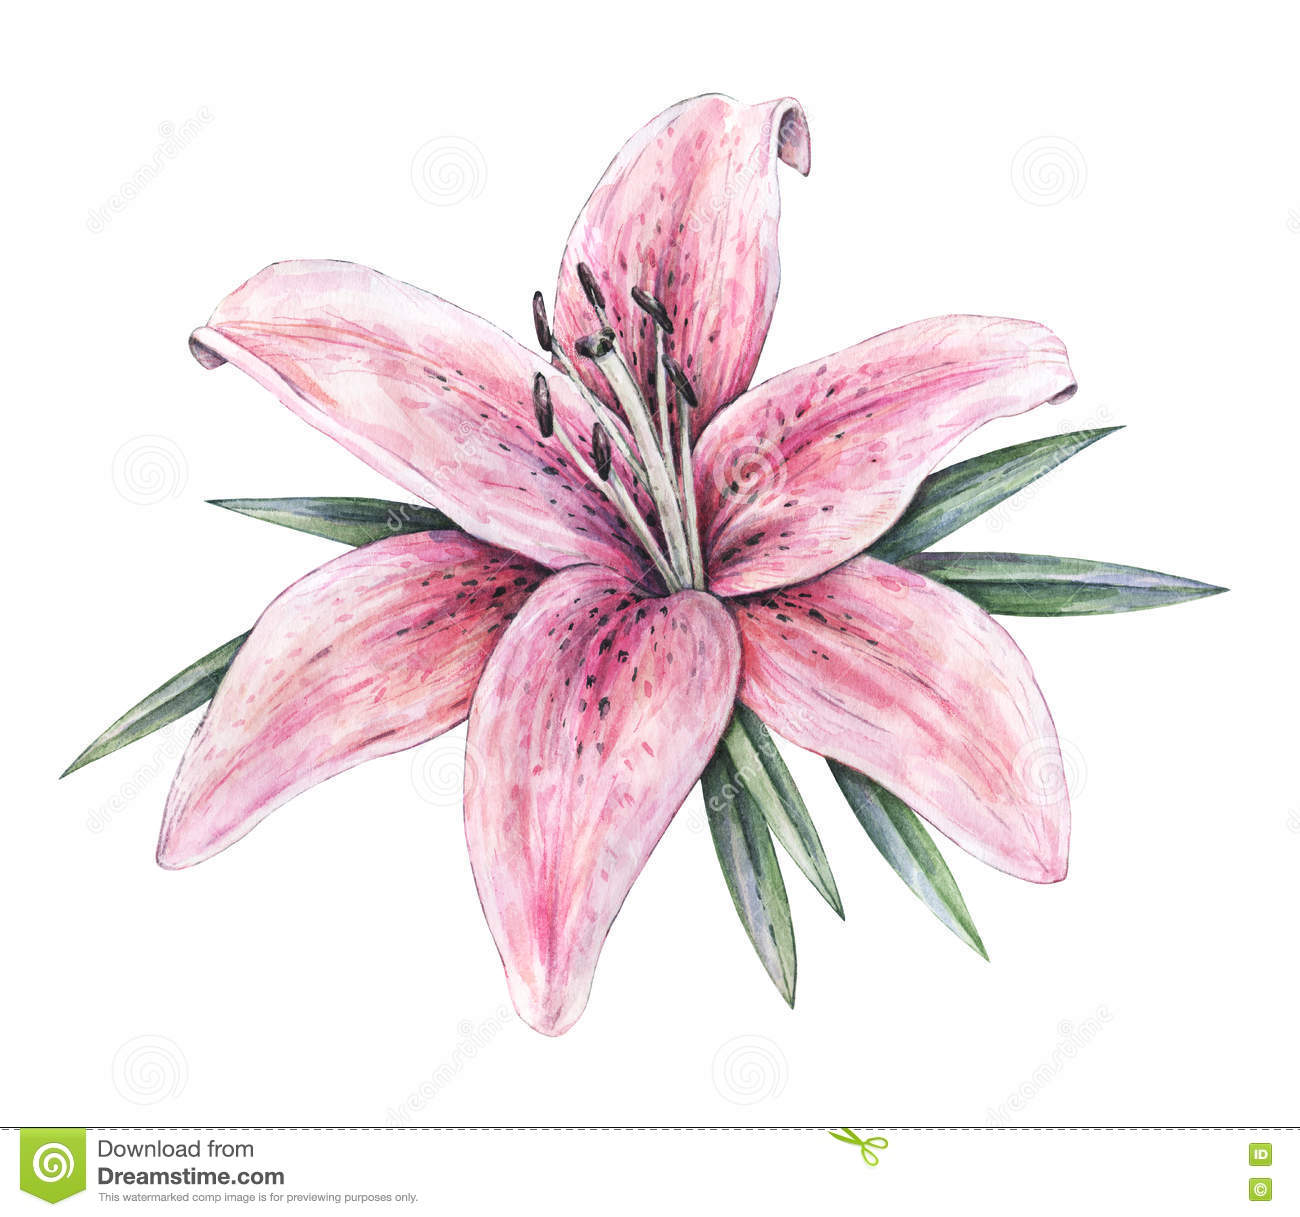 Pink lily flowers isolated on white background watercolor handwork pink lily flowers isolated on white background watercolor handwork illustration izmirmasajfo